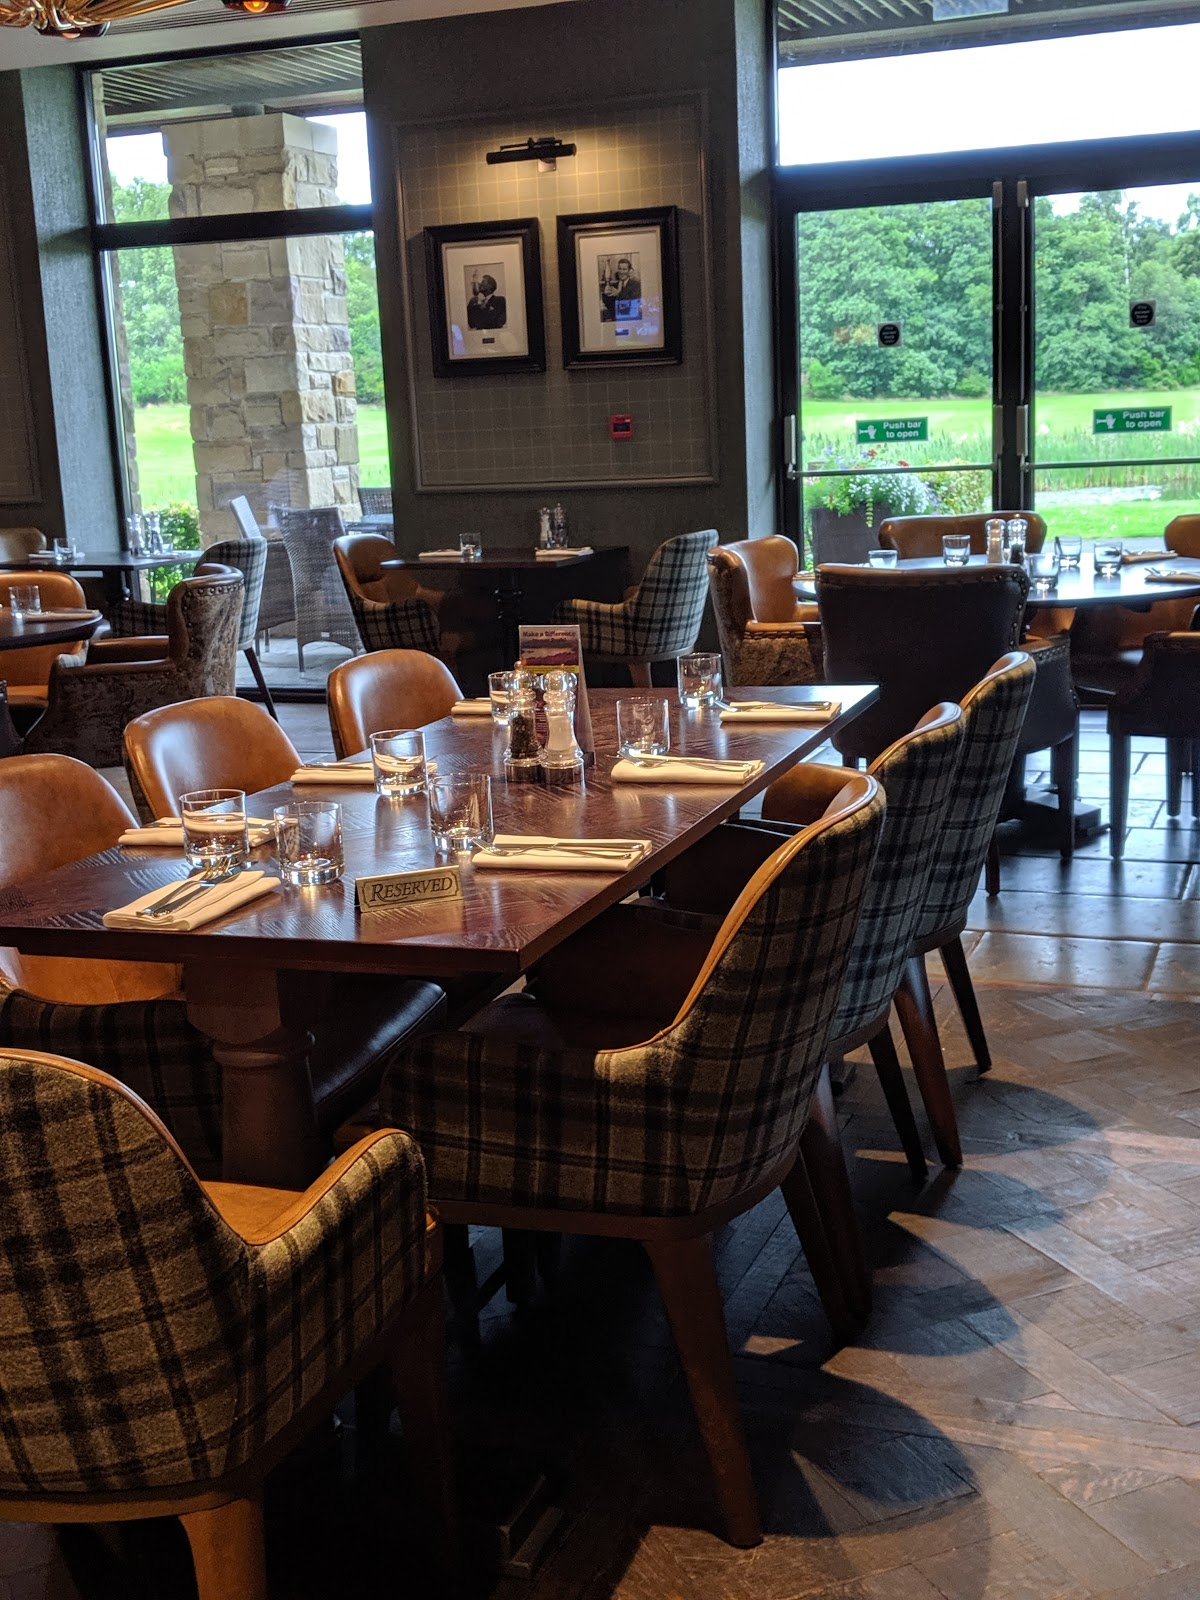 A Short Break at Cameron Lodges, Loch Lomond - cameron lodges clubhouse